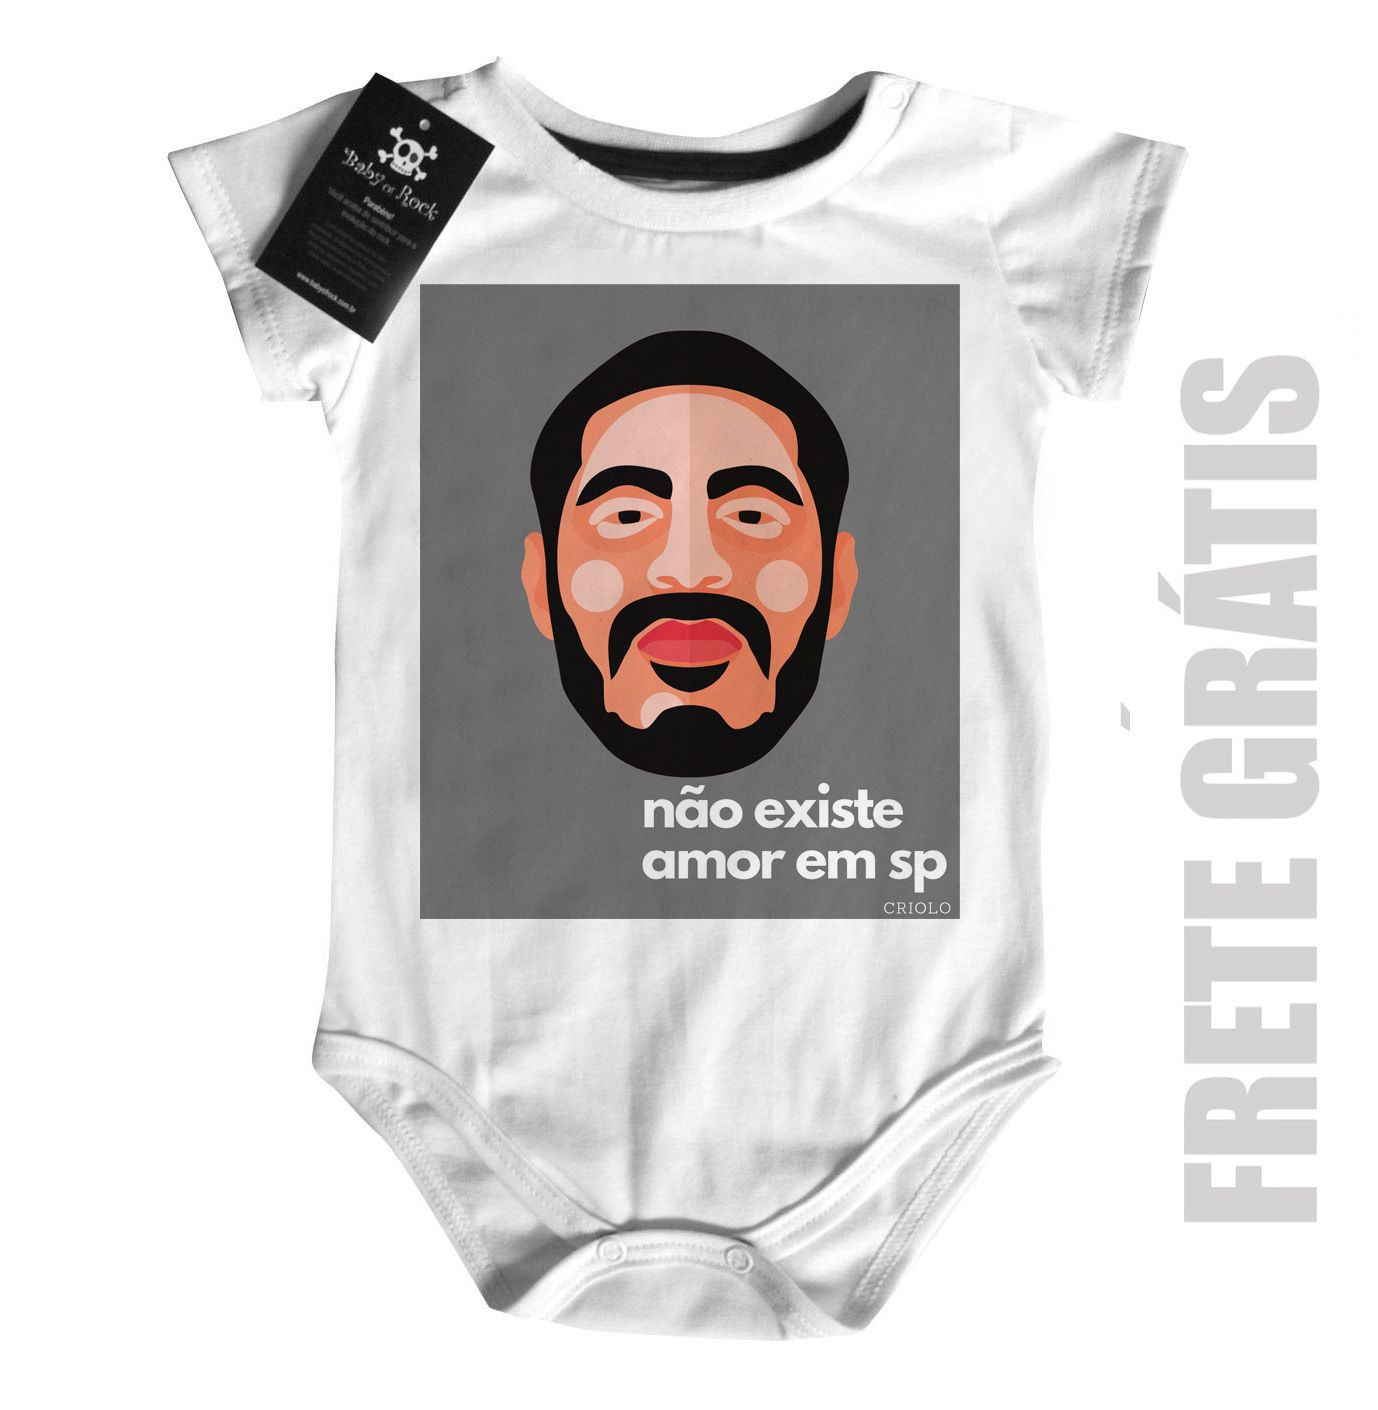 Body  Rap / Hip hop  Criolo Doido - White  - Baby Monster S/A